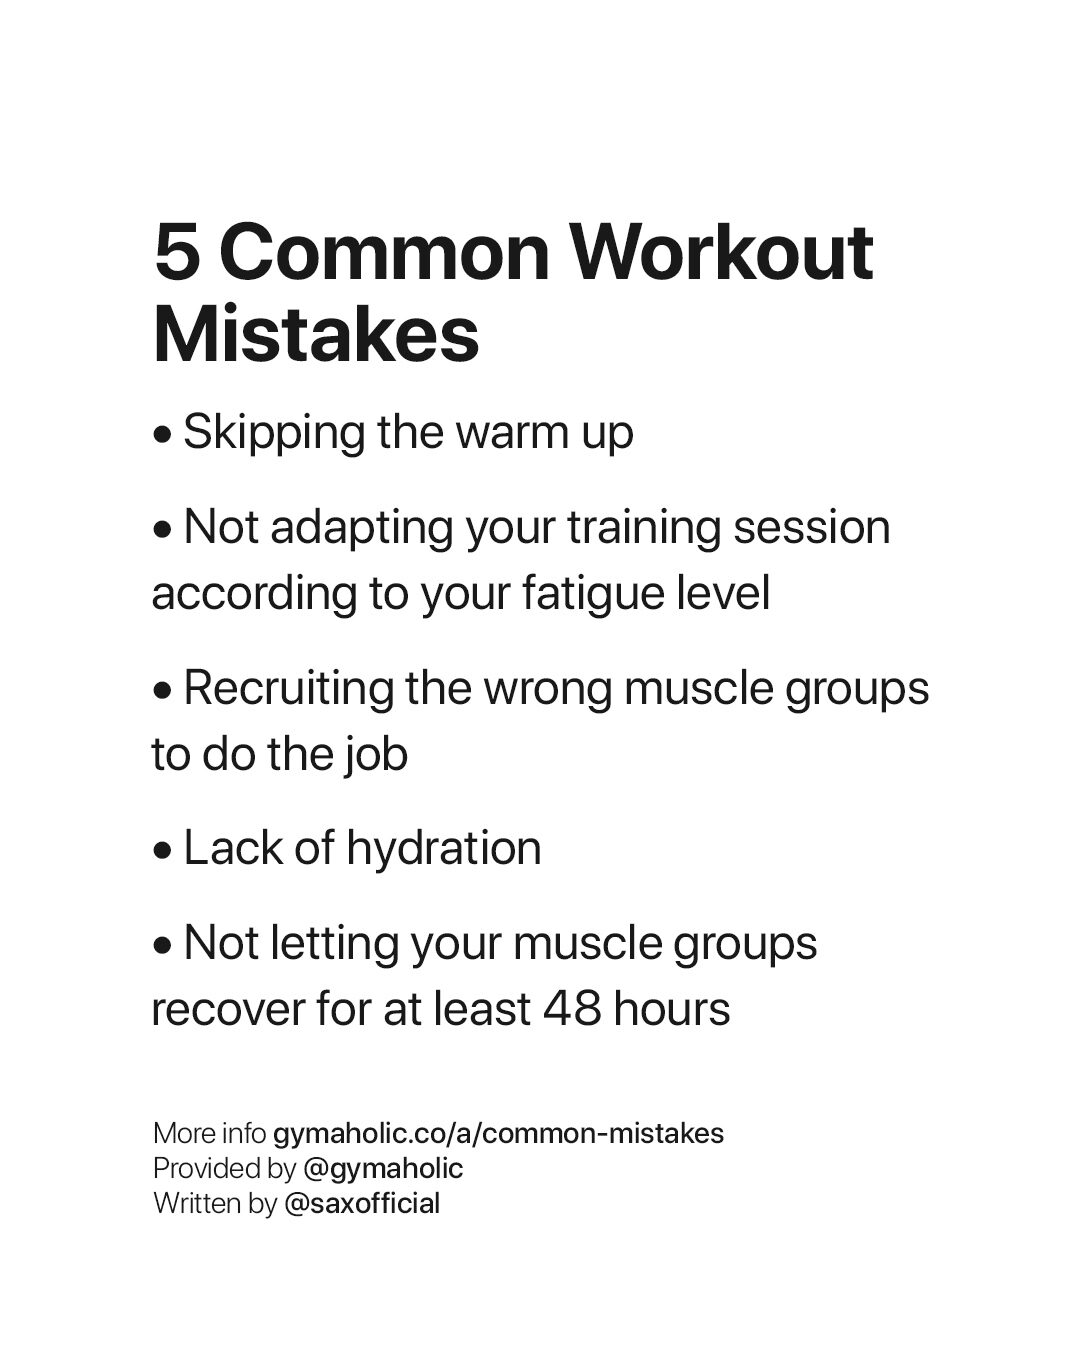 Common Workout Mistakes Fact